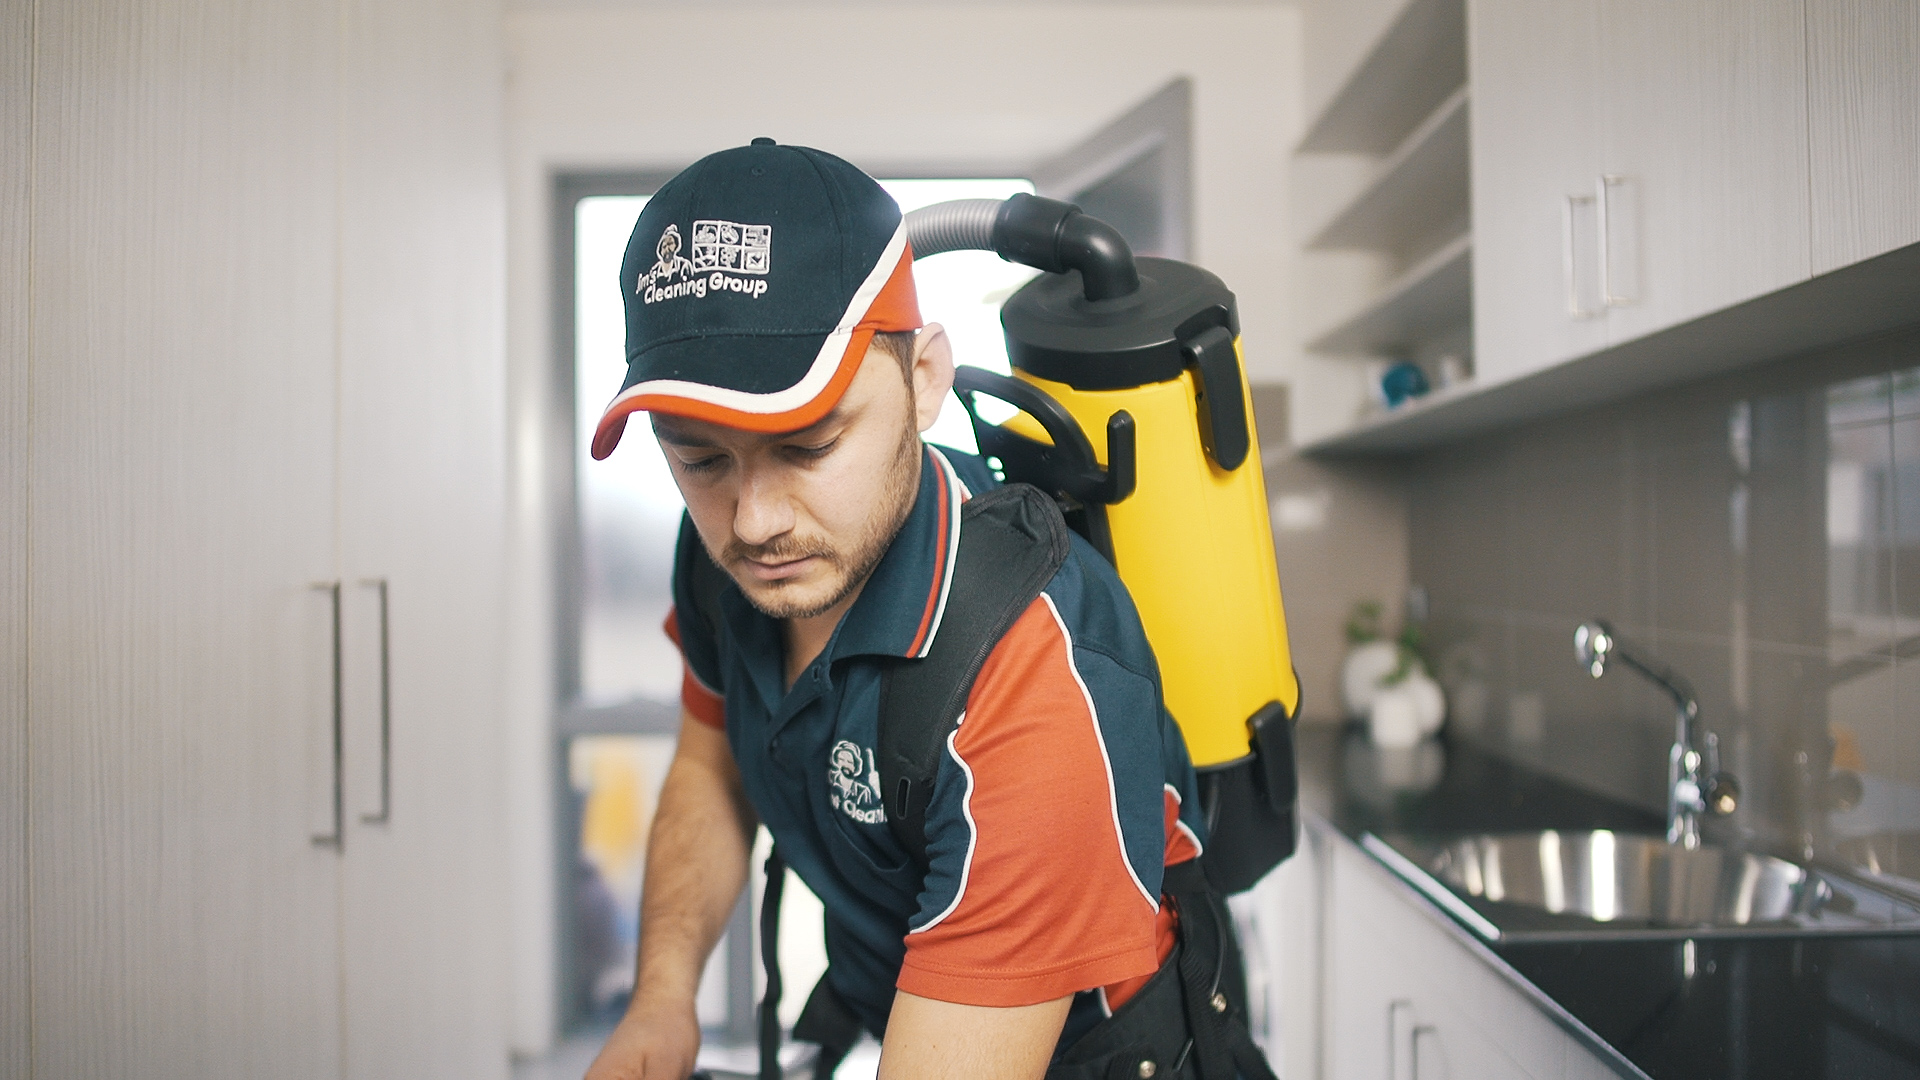 Jim's Carpet Cleaning Canberra